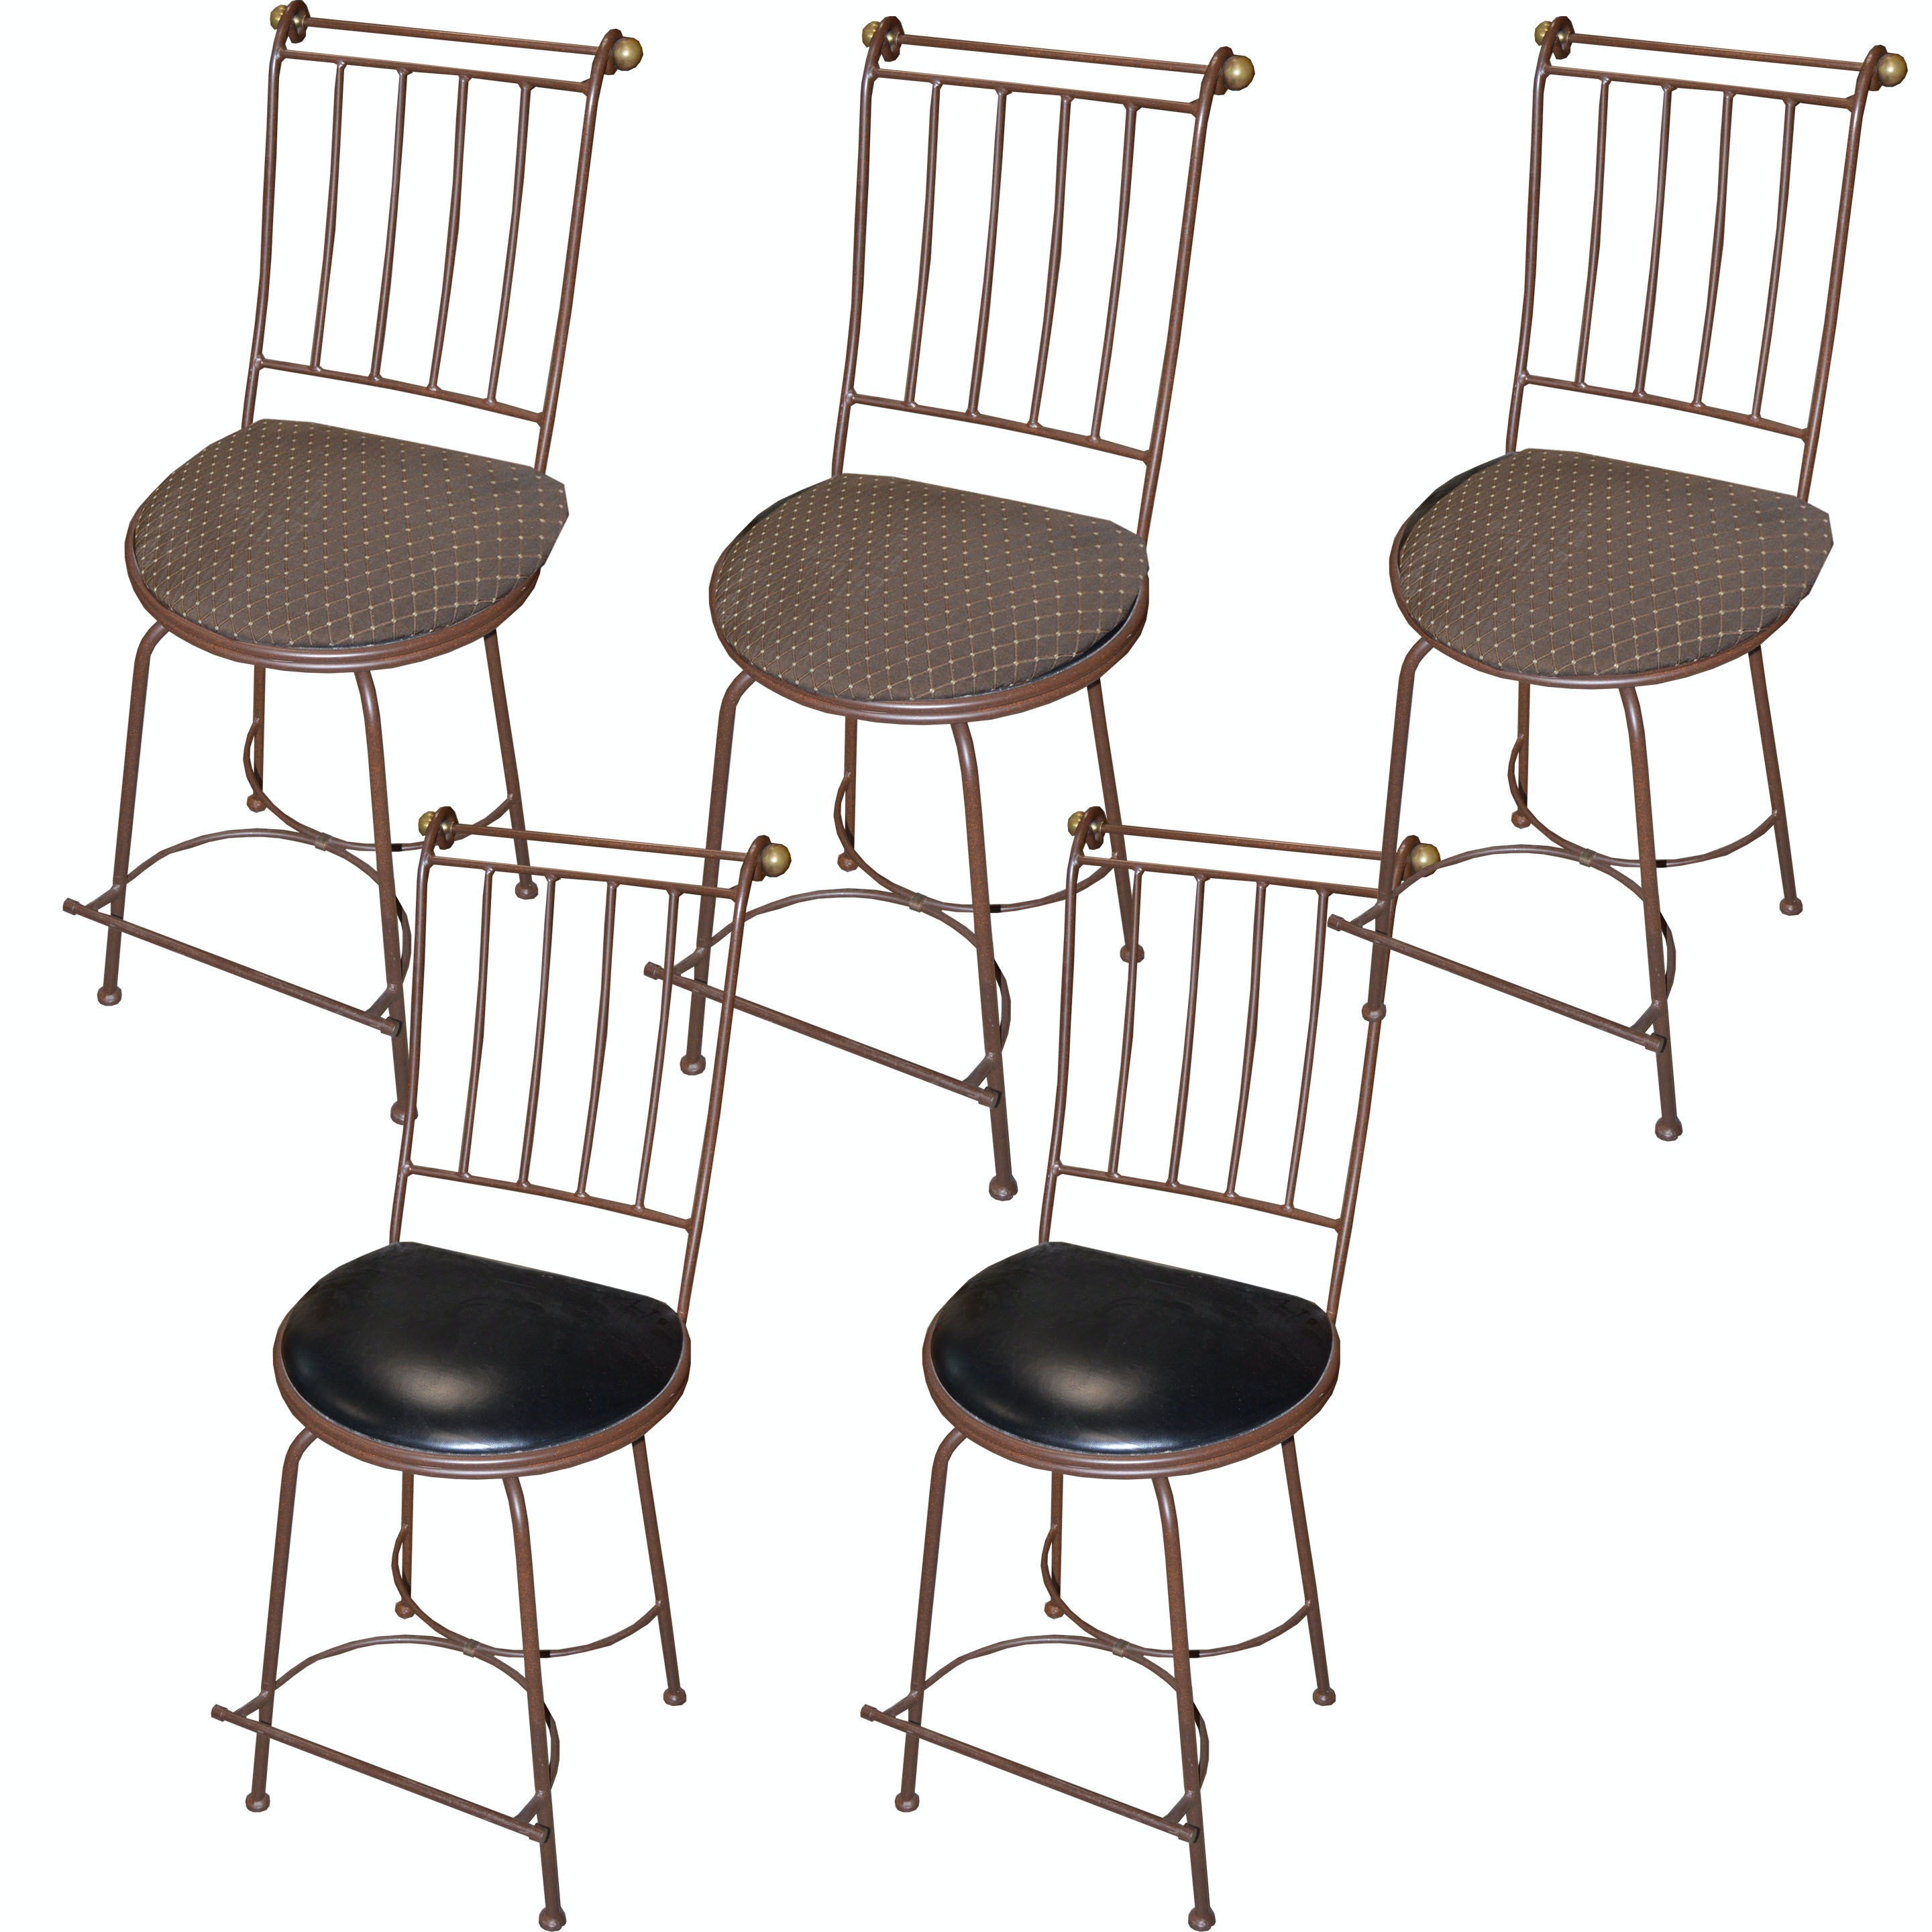 Five Padded Swivel Chairs with Brushed Metal Frames